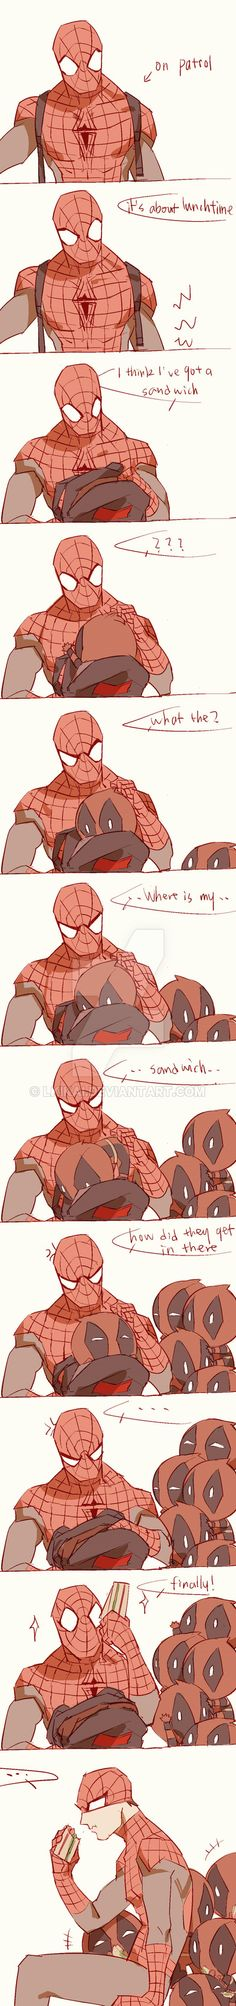 Spideypool222 by LKiKAi.deviantart.com on @DeviantArt